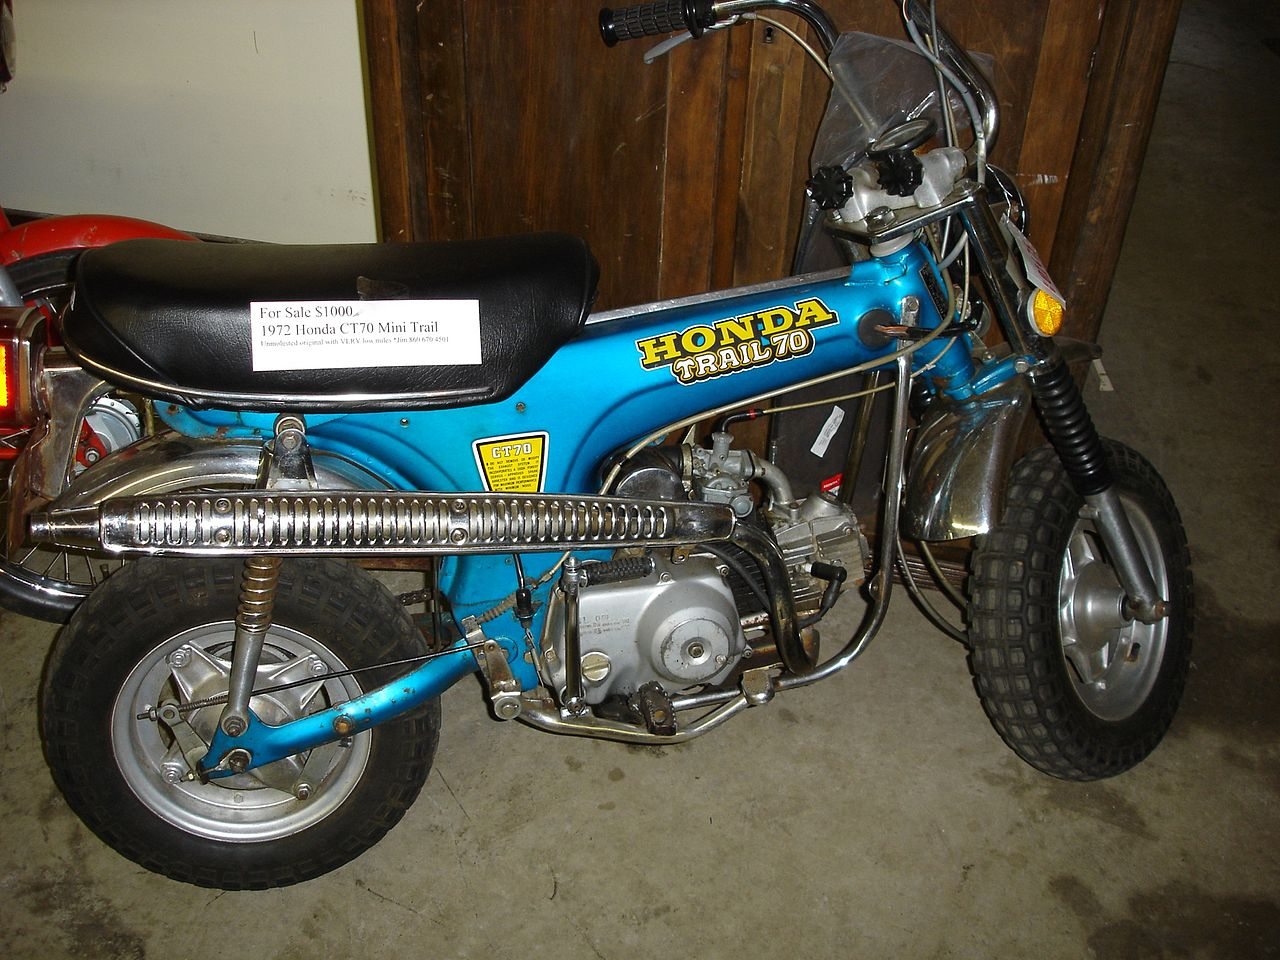 similiar honda ct70 keywords file 1972 honda ct70 mini trail jpg